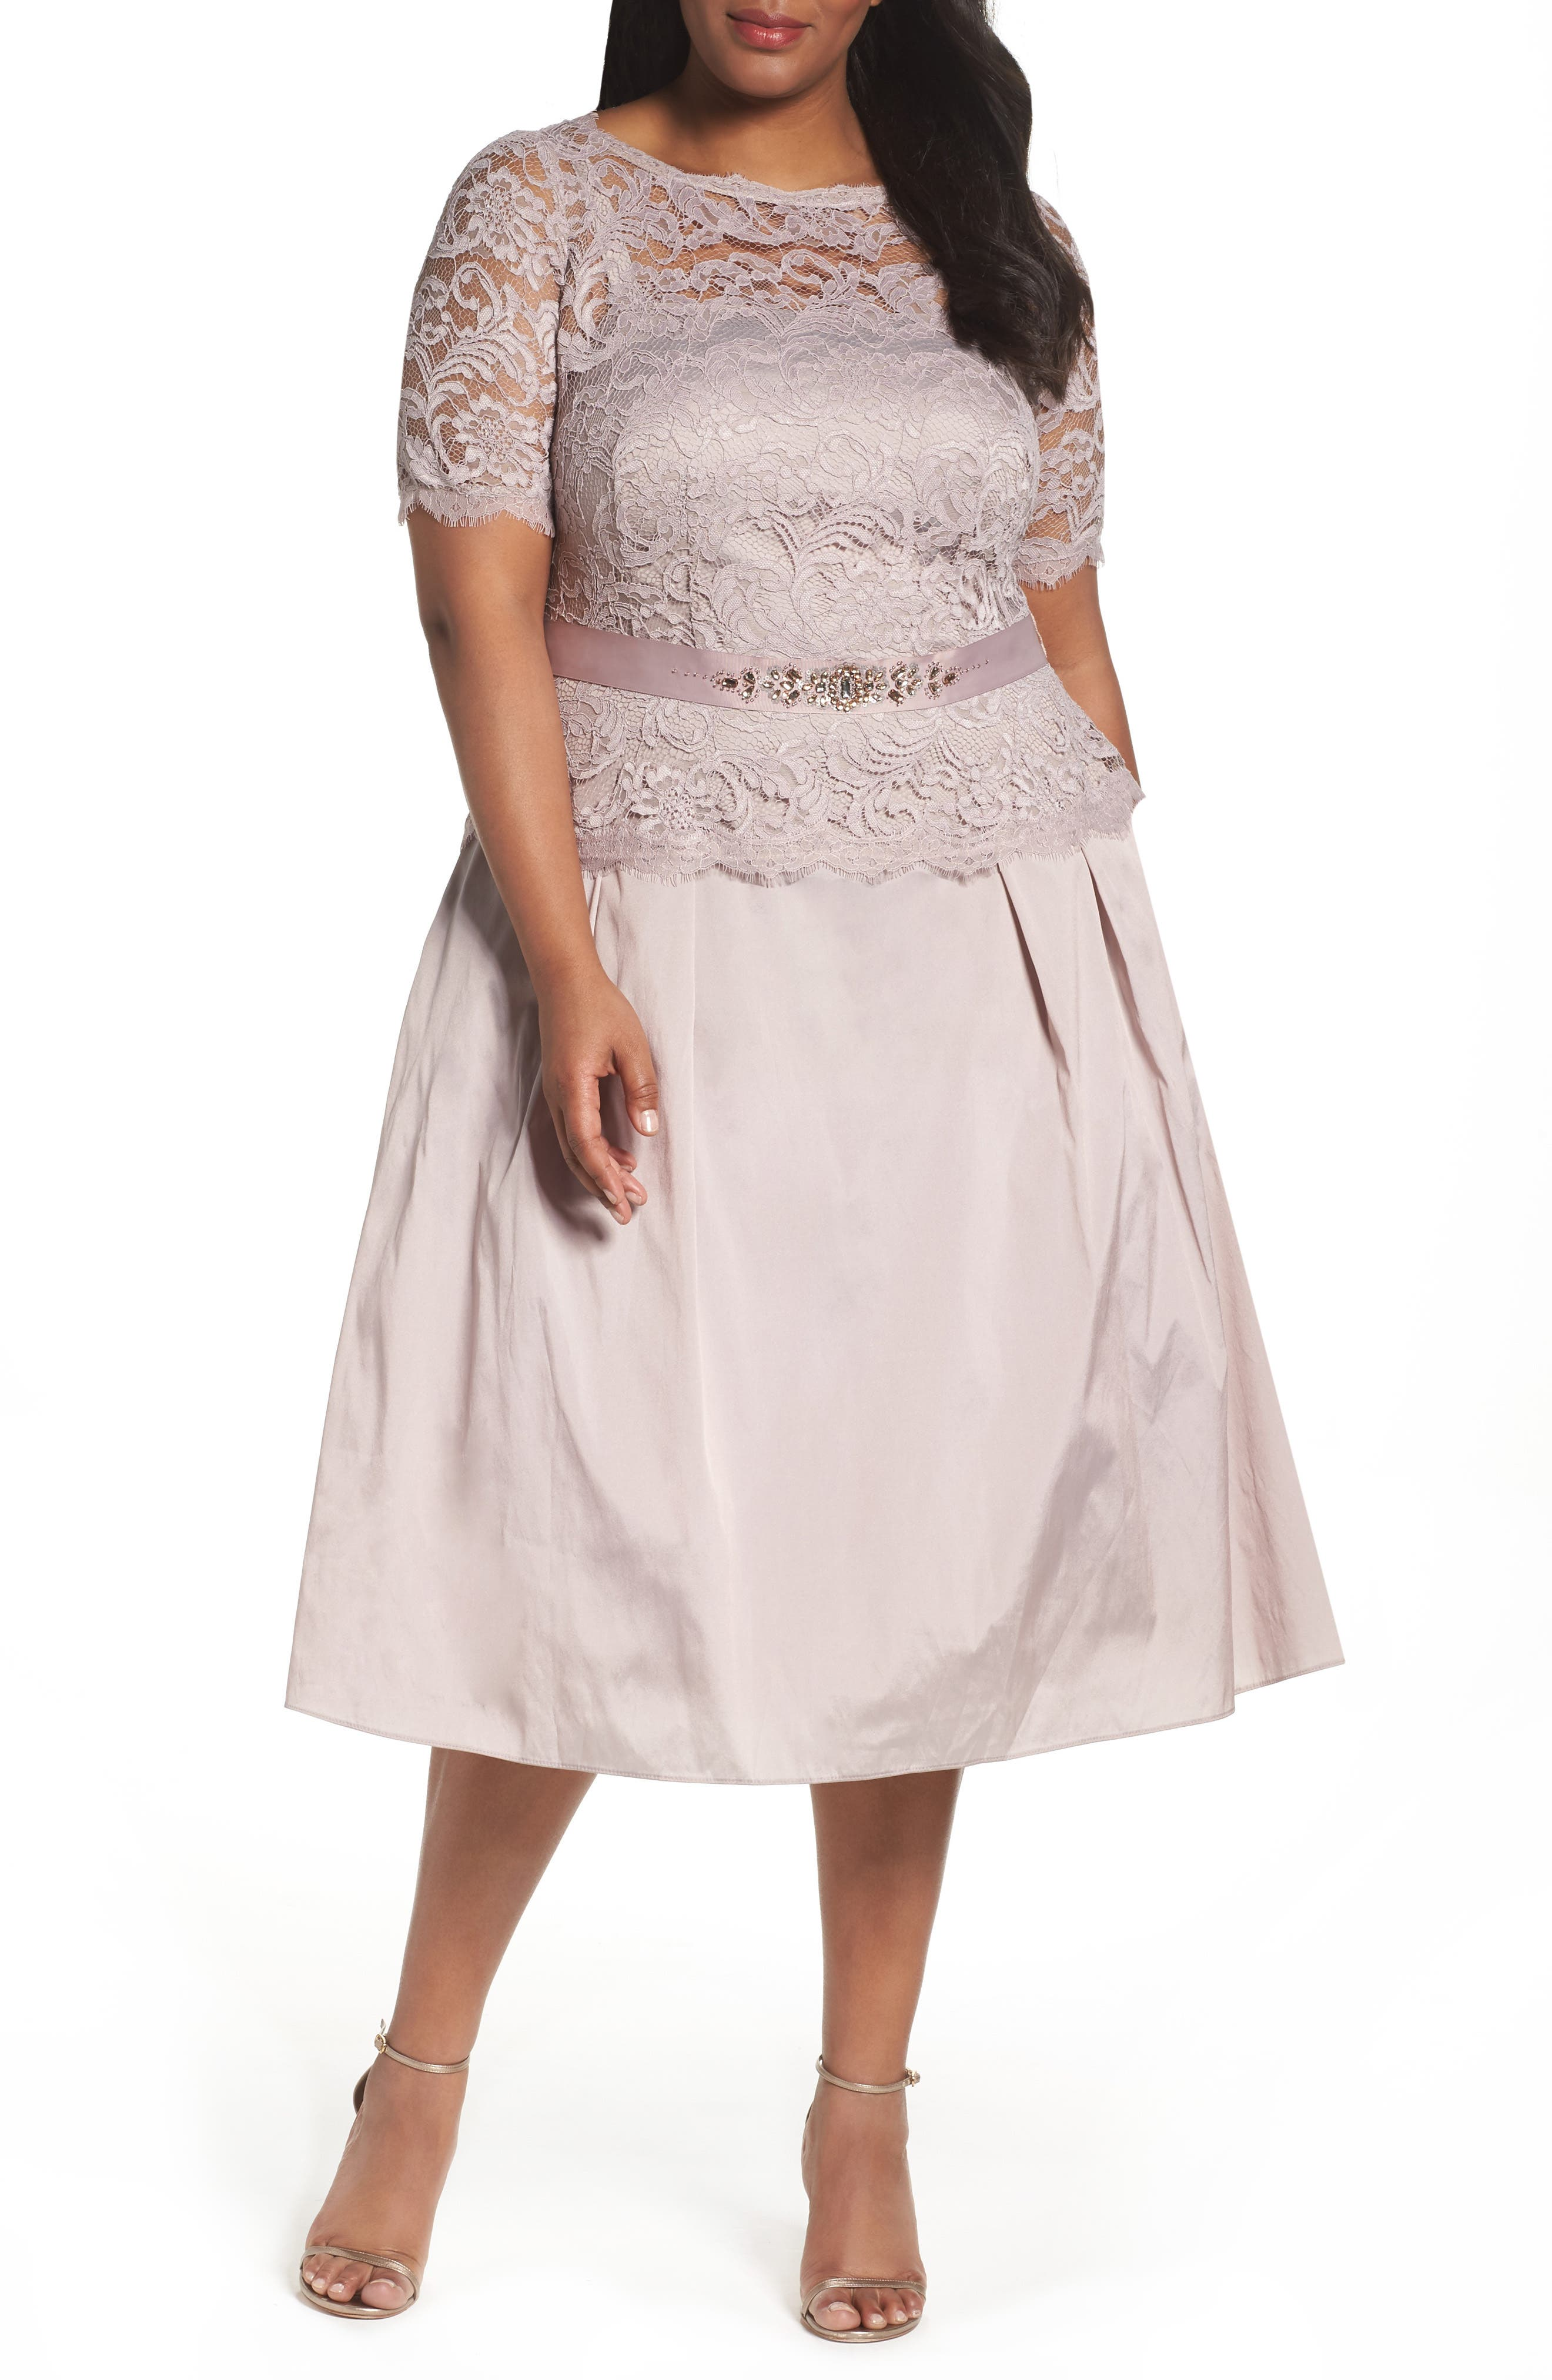 Adrianna Papell Lace & Taffeta Party Dress (Plus Size)